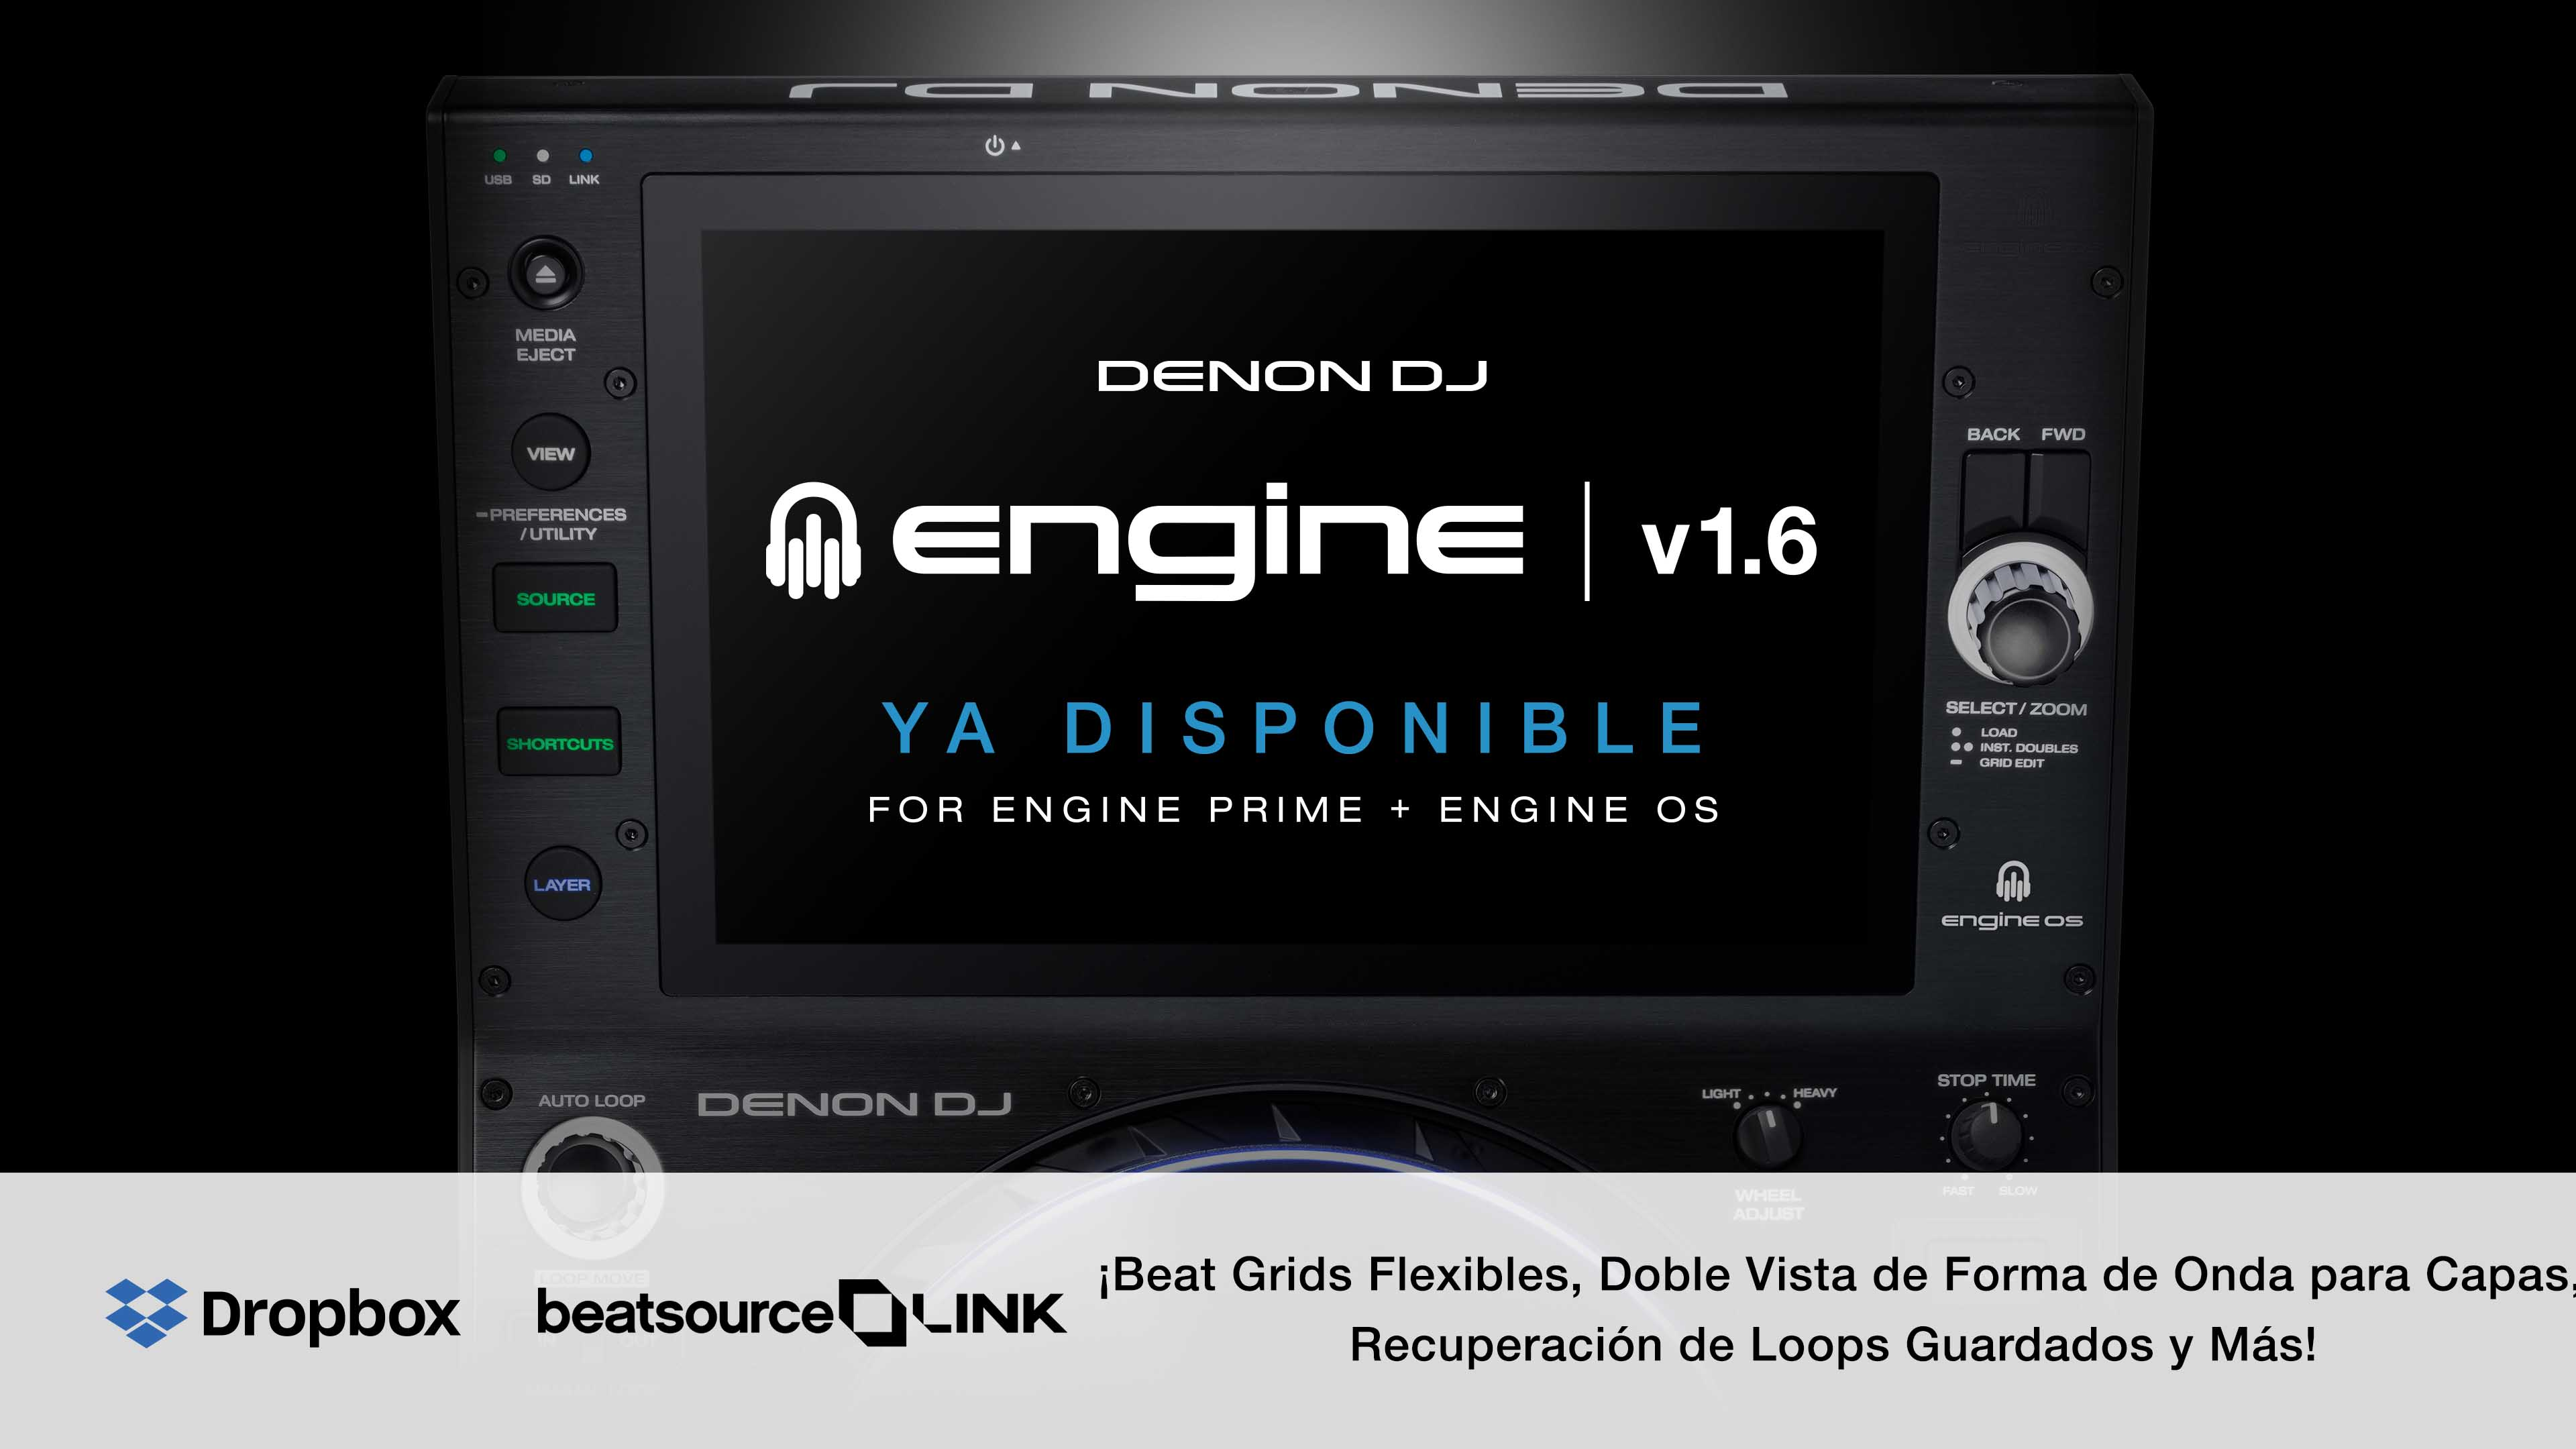 Actualización DENON DJ ENGINE v1.6 ya disponible